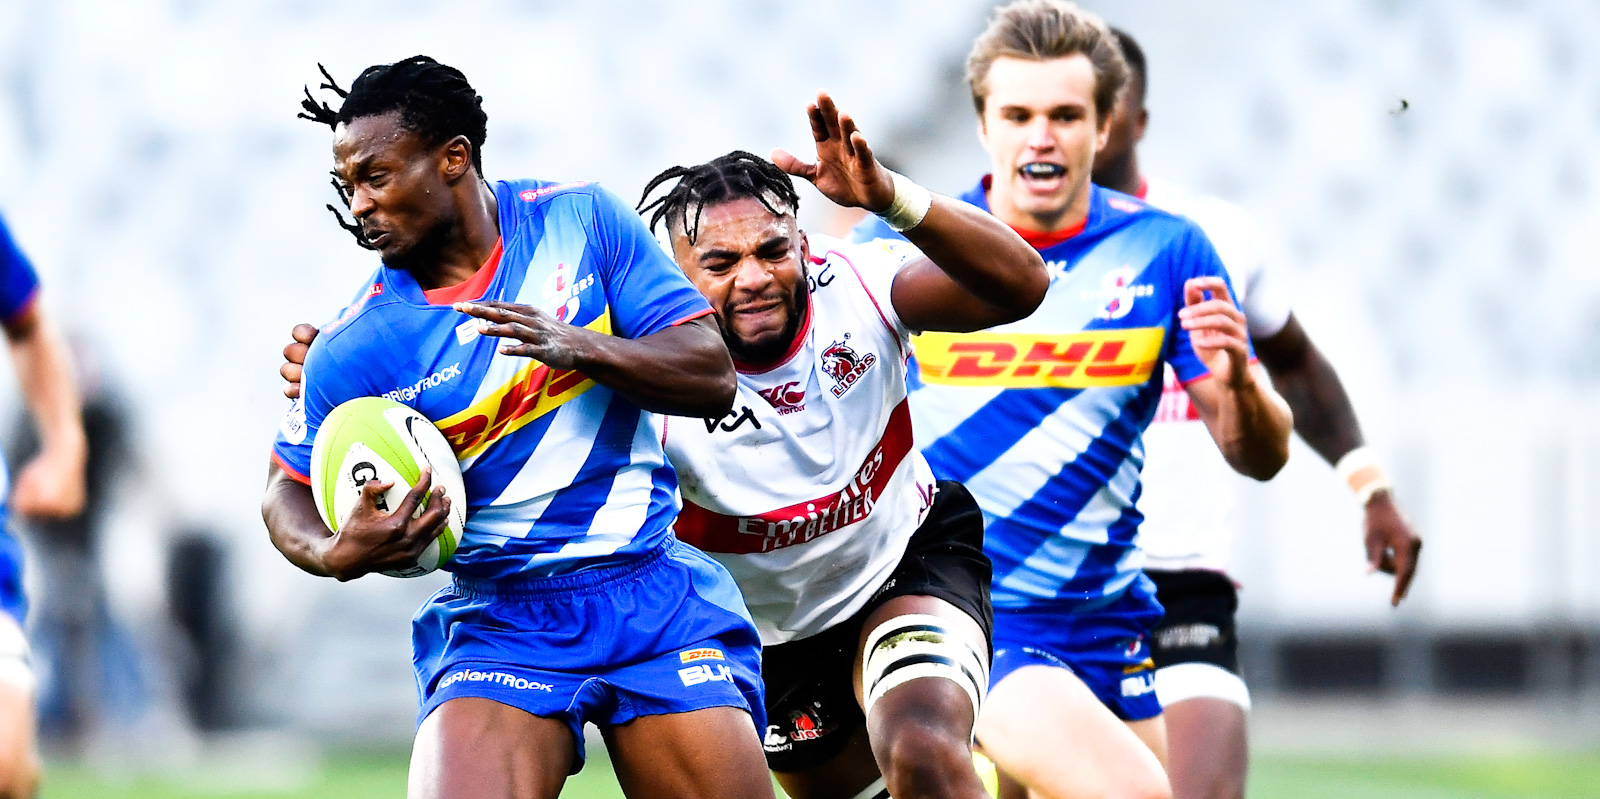 DHL Stormers speedster Seabelo Senatla attempts to evade a tackle